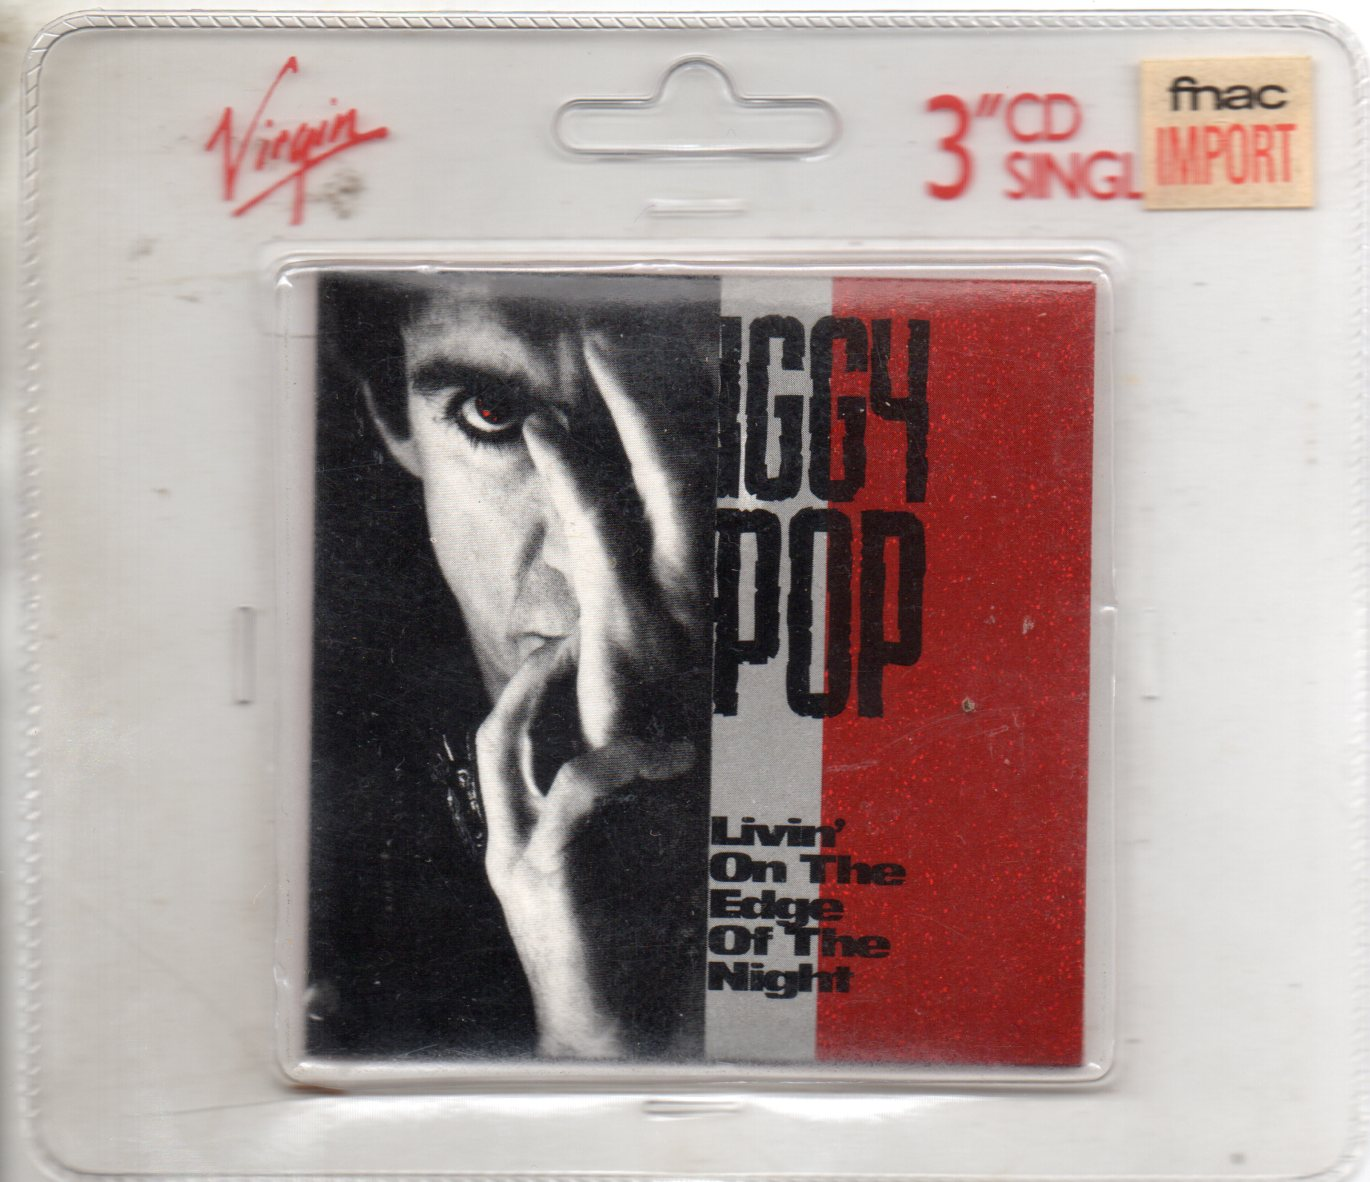 Iggy POP - Livin' On The Edge Of The Night 1990 Uk 4-track 3""